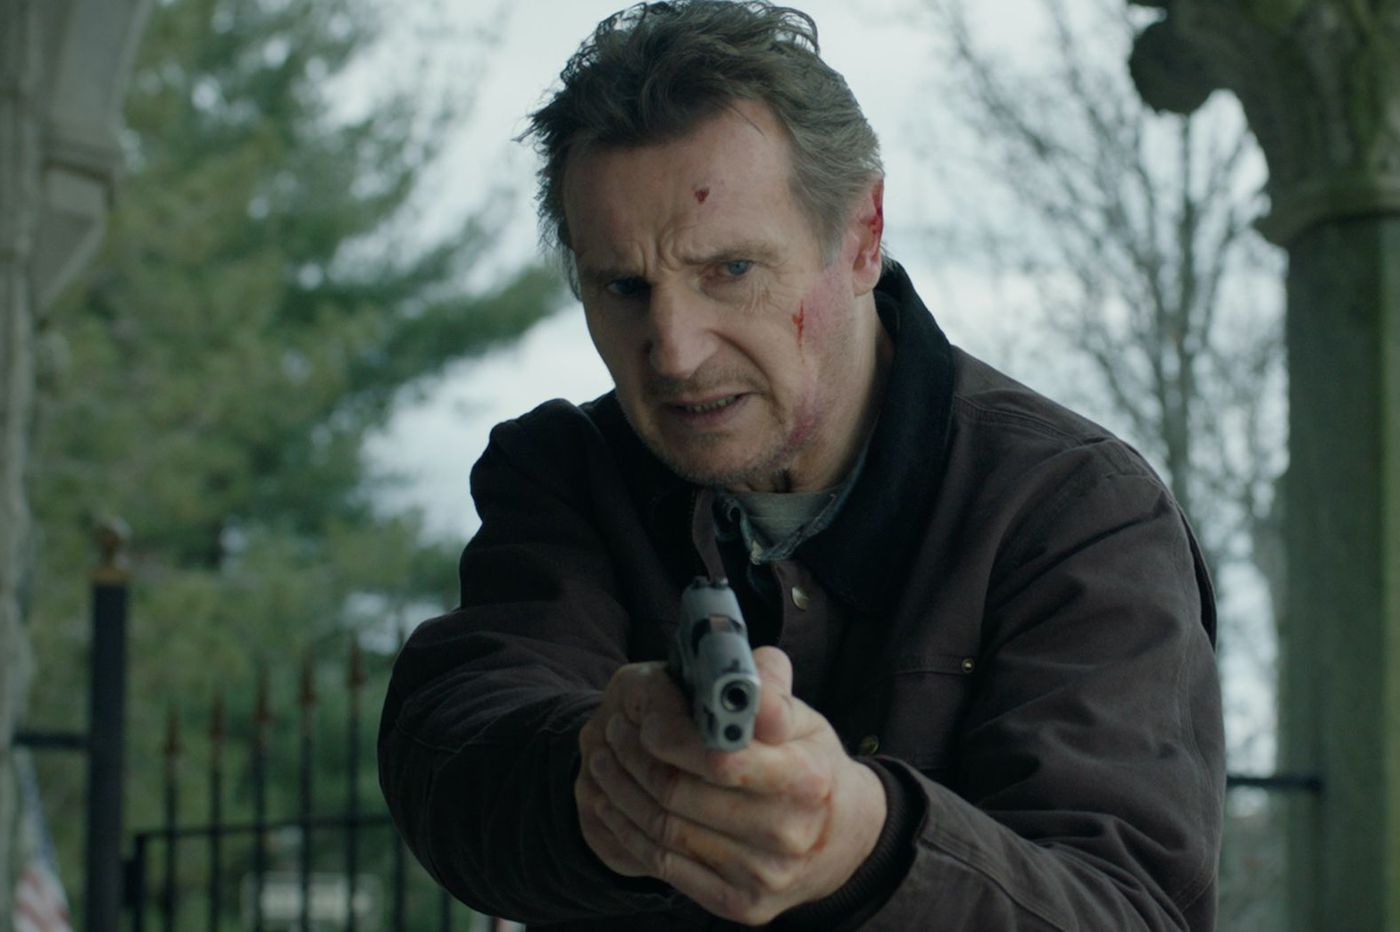 Liam Neeson tapped his working mum's layoff to stoke a righteous anger in 'Honest Thief'